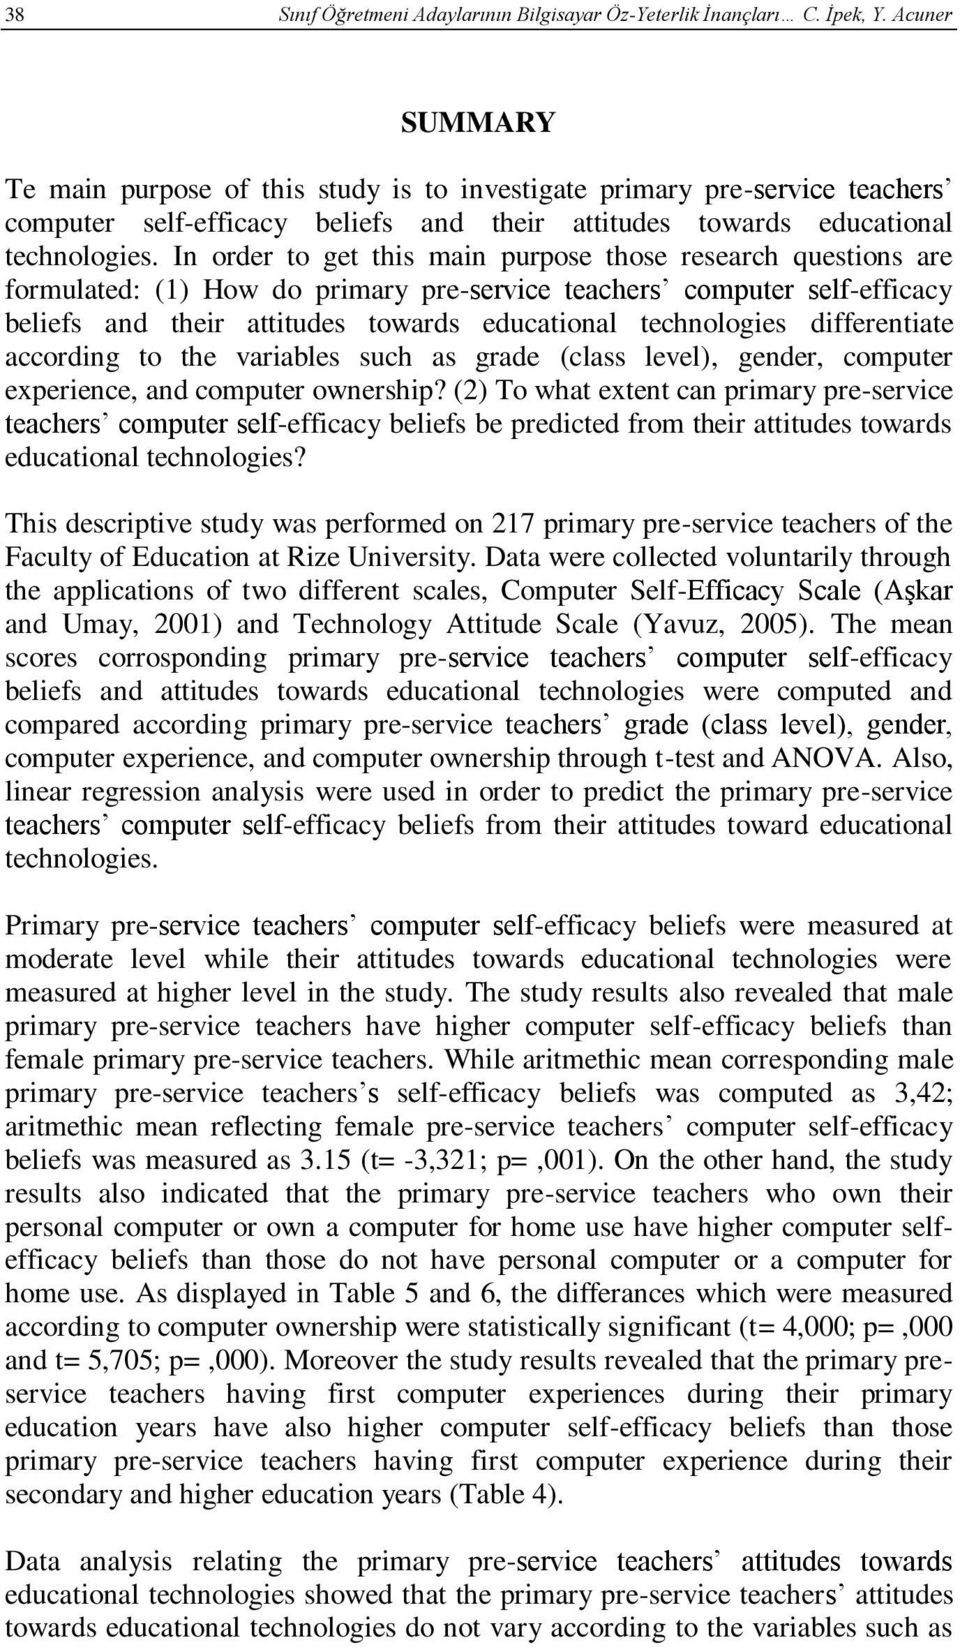 In order to get this main purpose those research questions are formulated: (1) How do primary pre-service teachers computer self-efficacy beliefs and their attitudes towards educational technologies